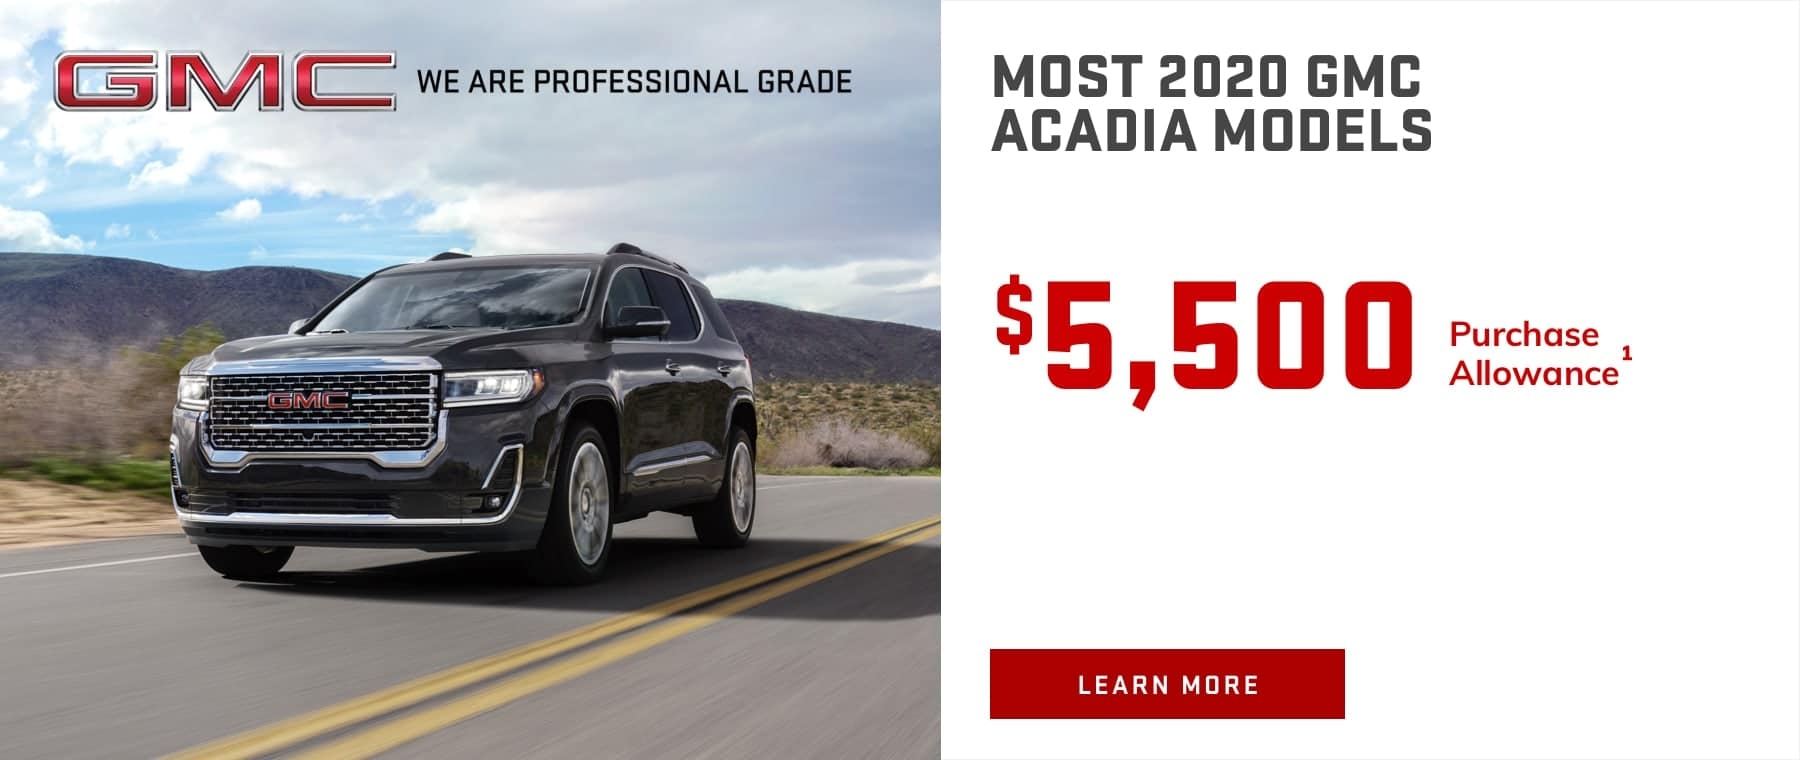 MOST 2020 GMC ACADIA MODELS - $5,500 Purchase Allowance